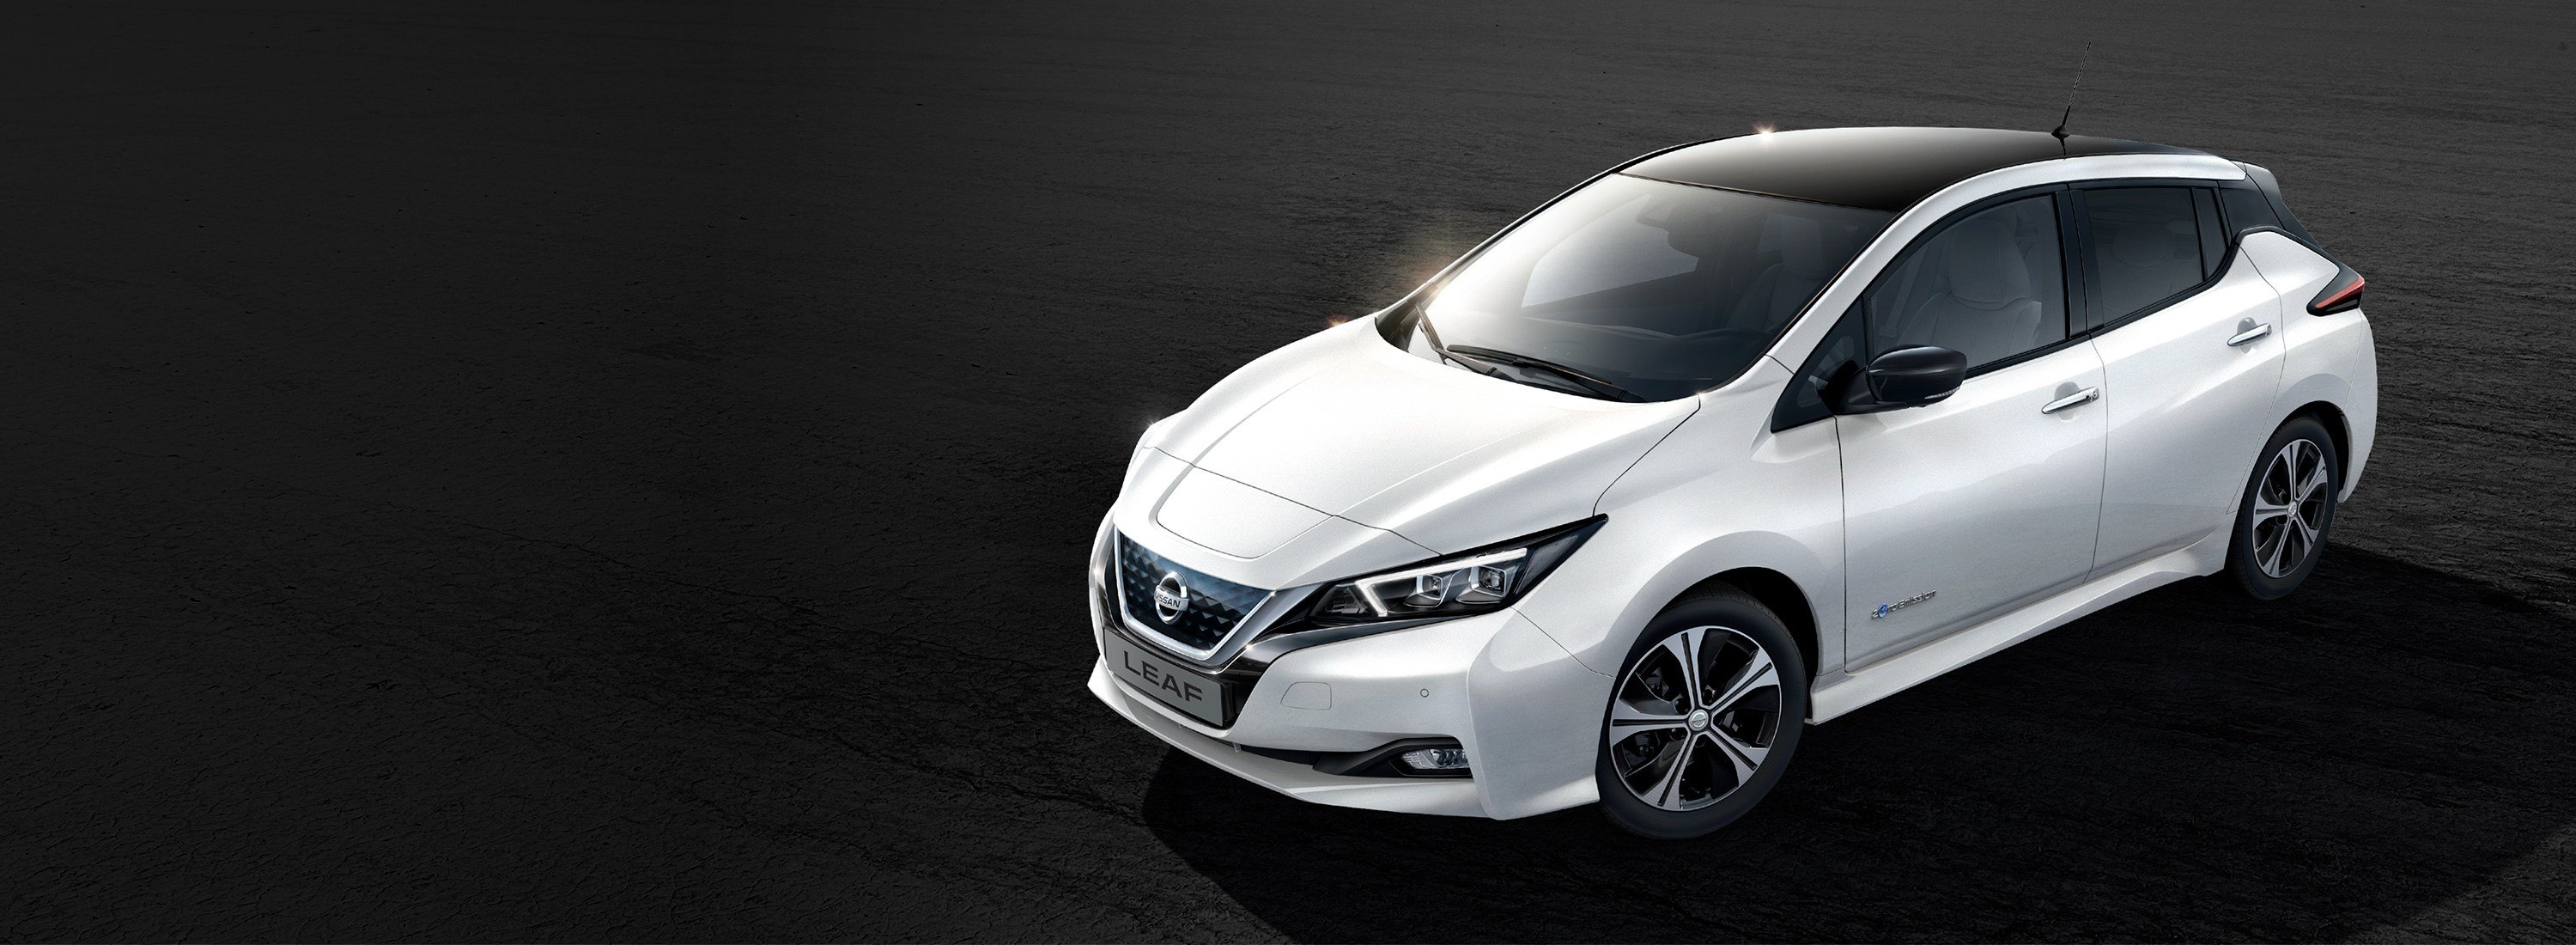 Latest Simply Amazing New Nissan Leaf 100 Electric Car Nissan Free Download